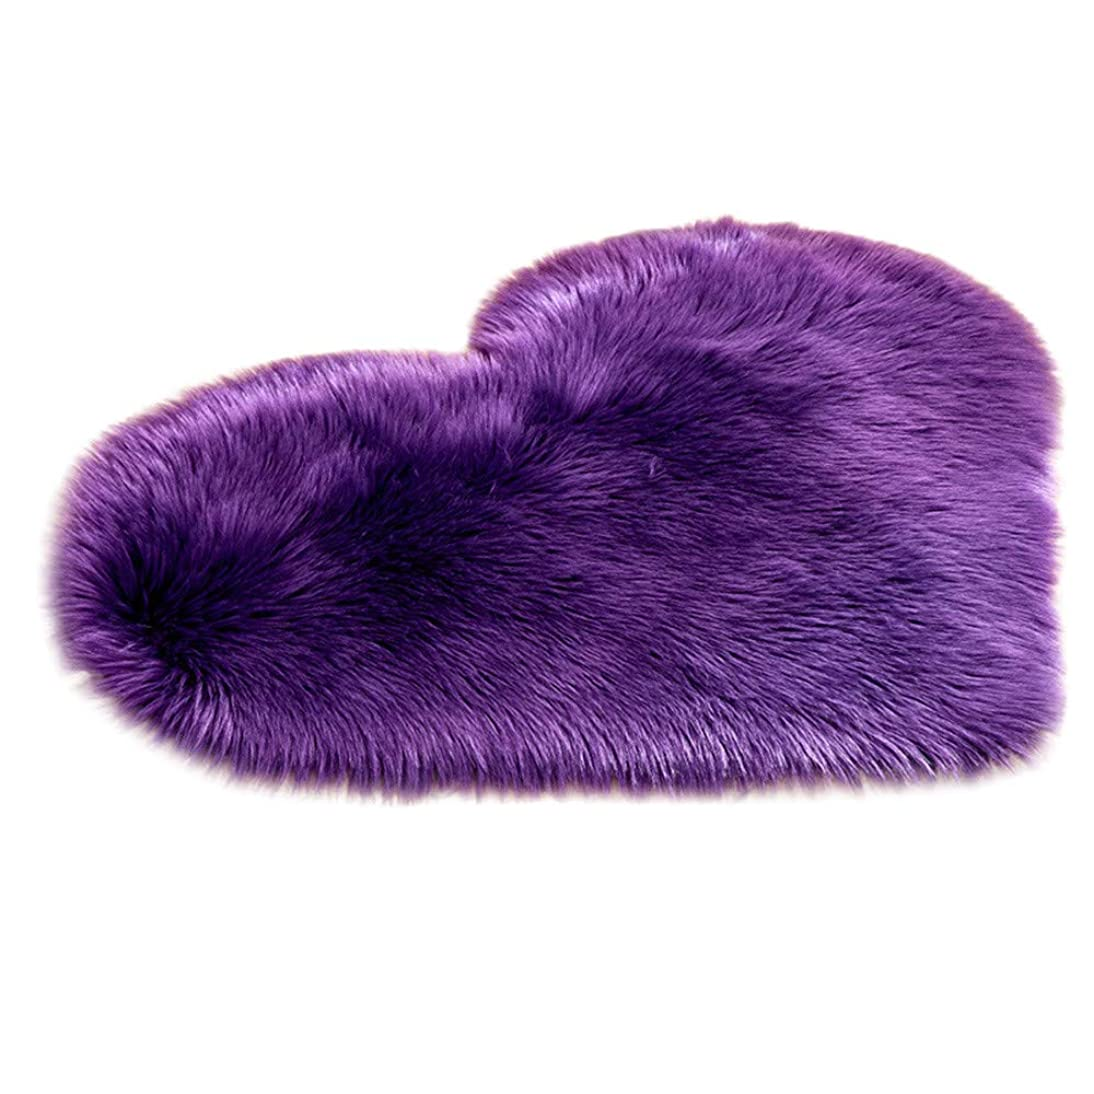 Creazy Wool Imitation Sheepskin Rugs Faux Fur Non Slip Bedroom Shaggy Carpet Mats (E) lsfp638453045253